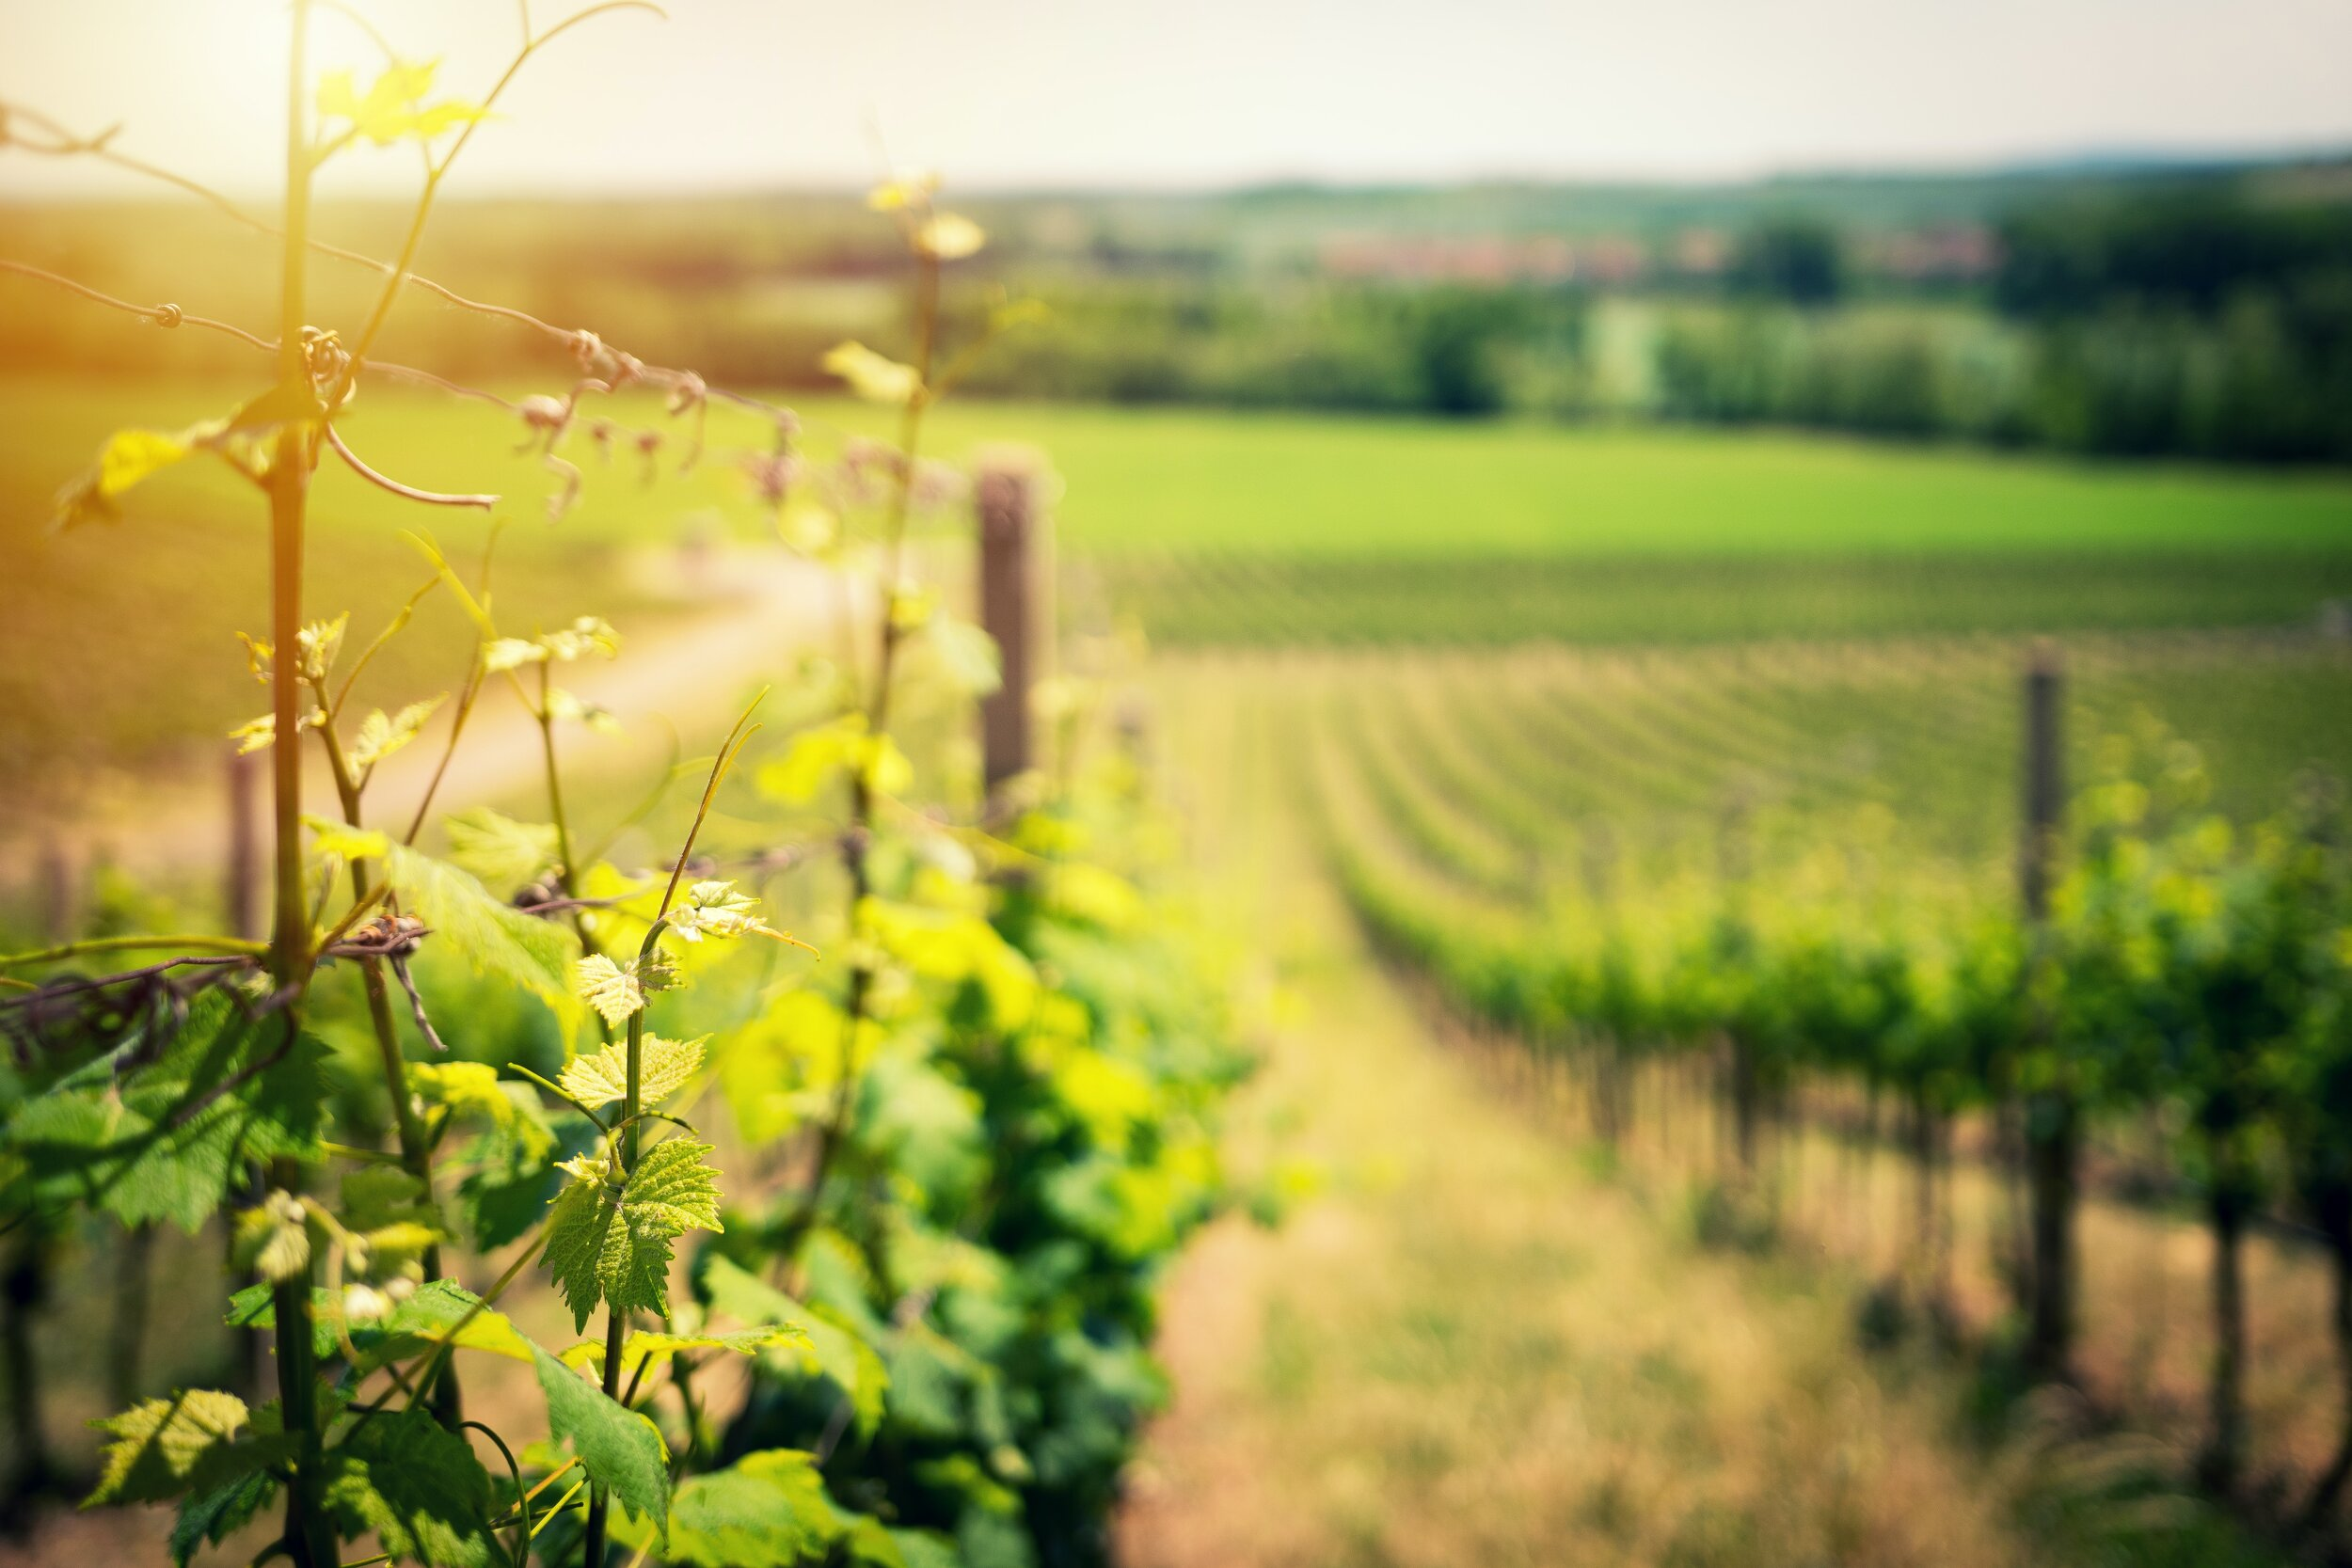 The South Downs is home to some of the best vineyards in the world (in our opinion!)